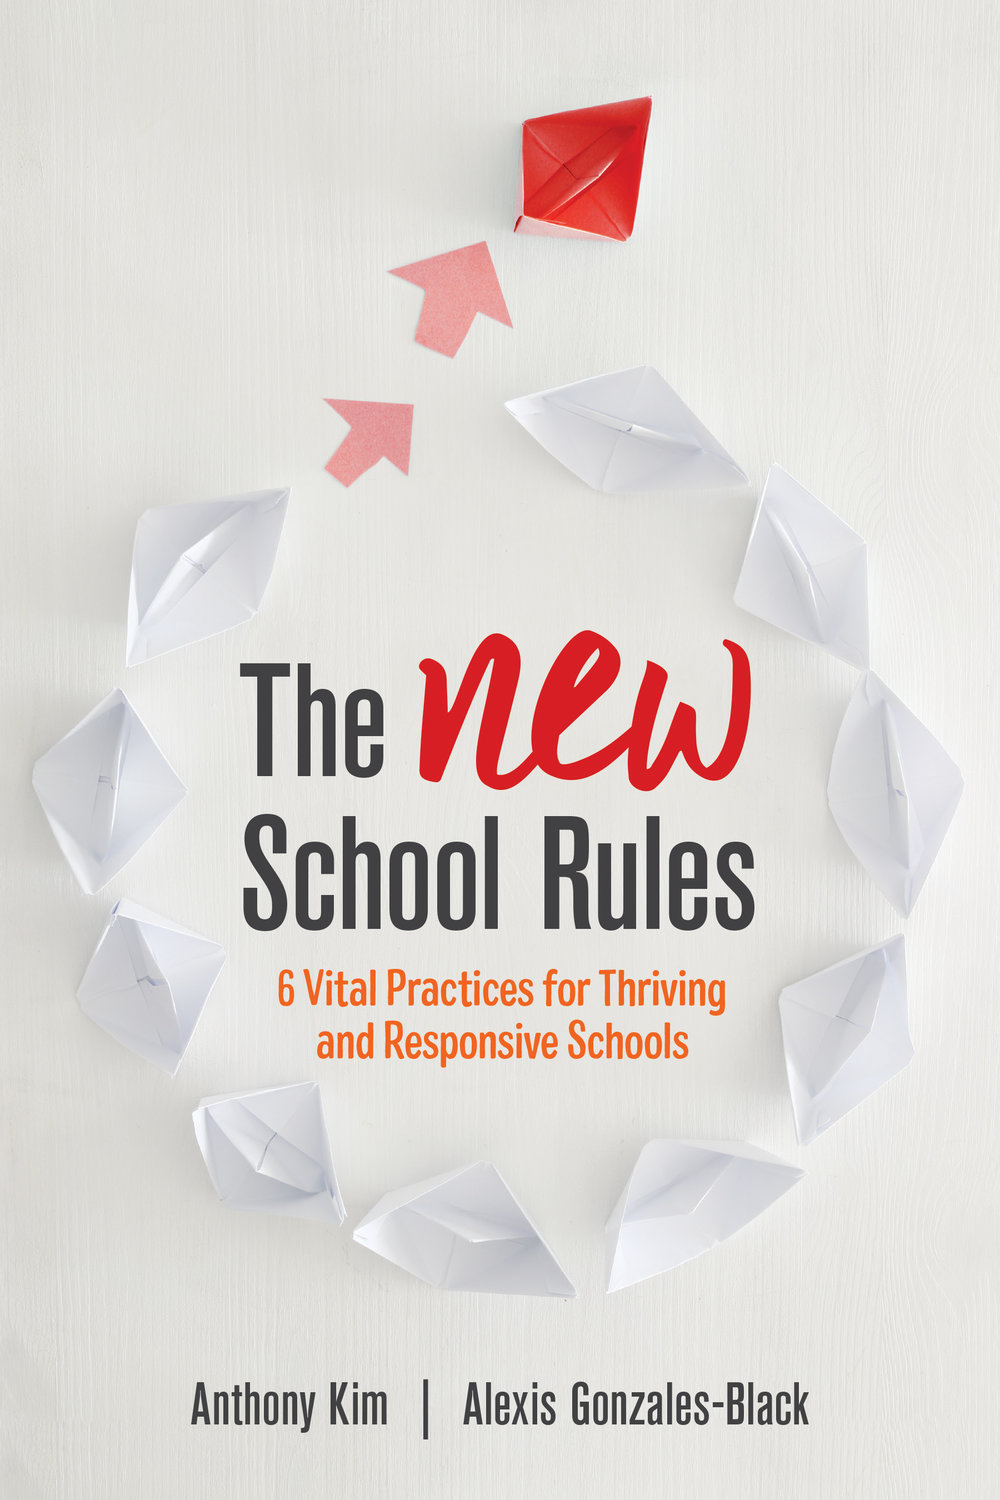 New Book! - Check out TOP Co-Founder, Alexis Gonzales-Black's new book The New School Rules: 6 Vital Practices for Thriving and Responsive Schools available now on Amazon.Reviews from TOP friends and Clients:The NEW School Rules offers a critical and timely framework to ensure that future generations are equipped to thrive in a rapidly changing world.—Tony Hsieh, CEO of Zappos.com, and New York Times bestselling author of Delivering HappinessWhen we take something as beautiful and life-giving as education and find that managing the institutions that provide it is soul-crushing, we know something is very wrong. The NEW School Rules shows us the problem, offers an alternative vision of educational administration and gives us the practical tools to unlock new energy in ourselves and our colleagues. Every administrator should read this book.—Matthew Kramer, CEO of The Wildflower Foundation and former Co-CEO of Teach for America